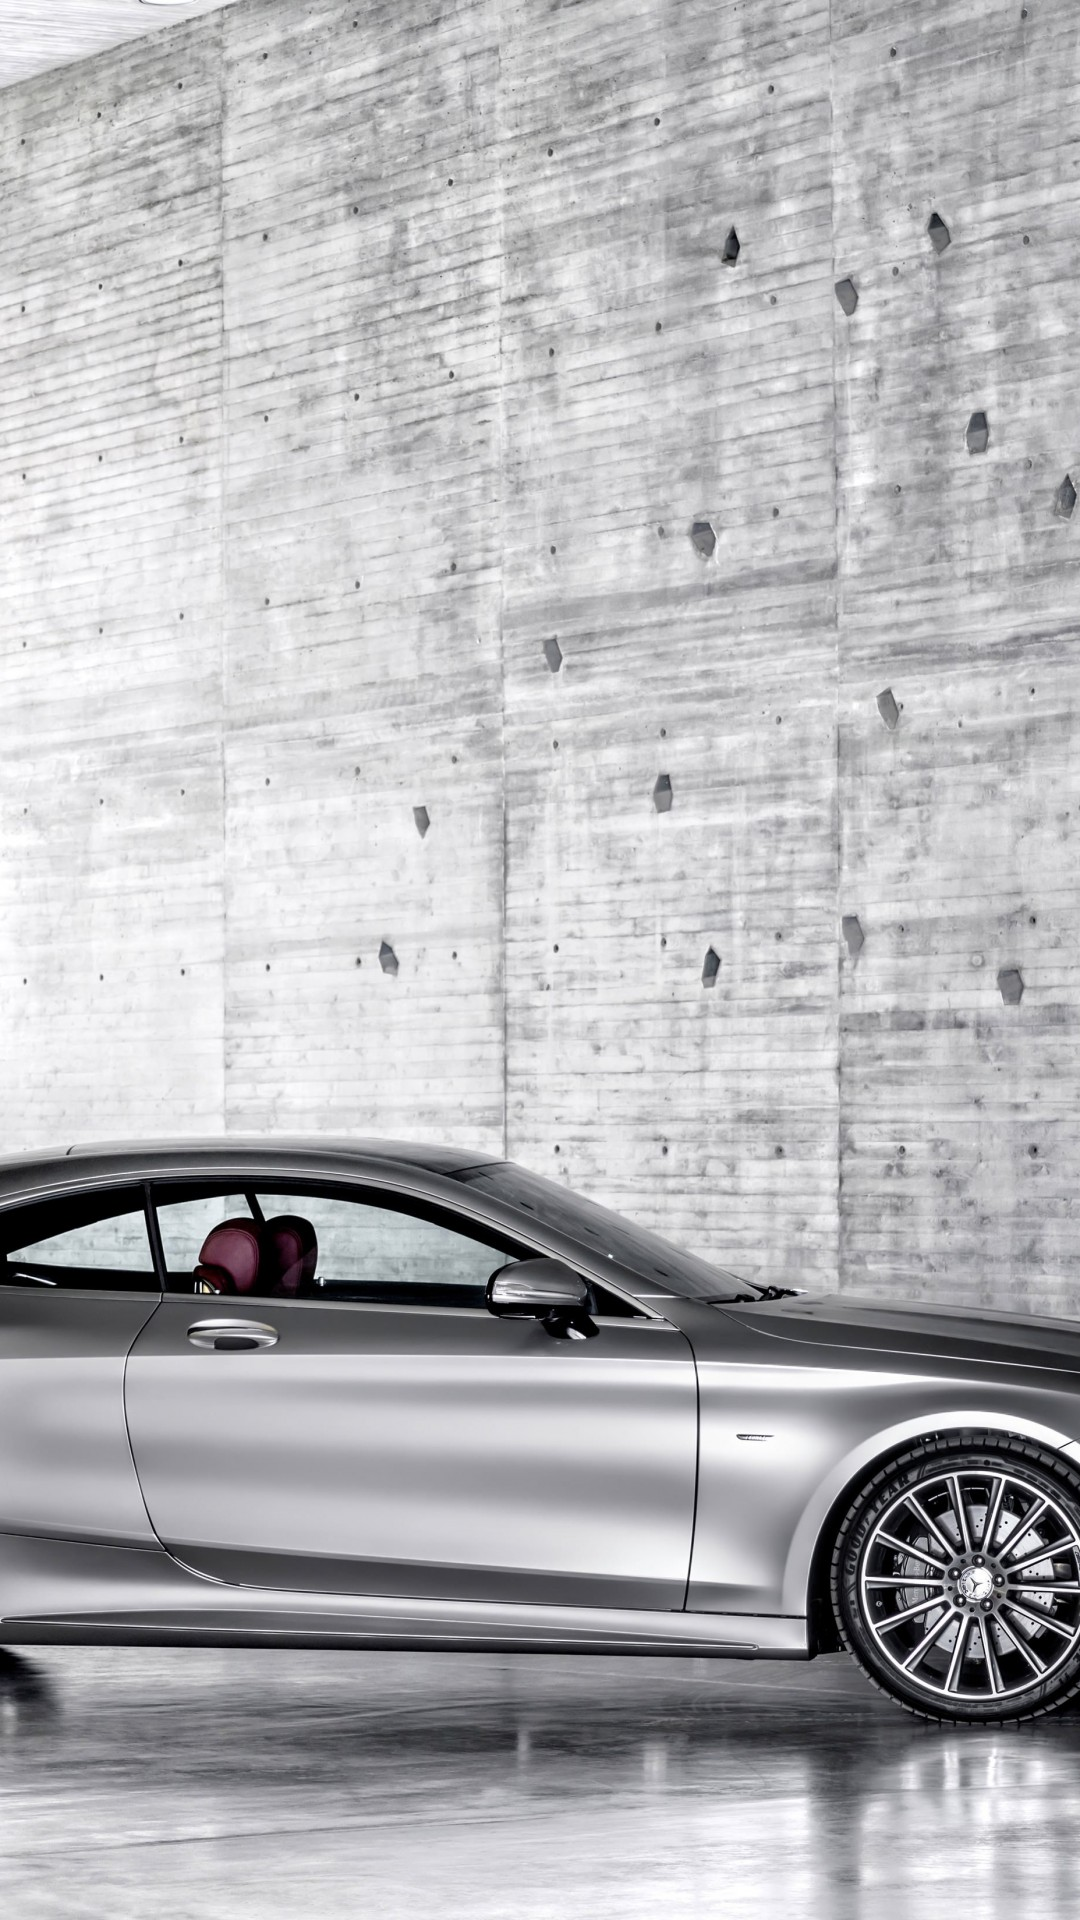 2015 Mercedes-Benz S-Class Coupe Wallpaper for SONY Xperia Z2